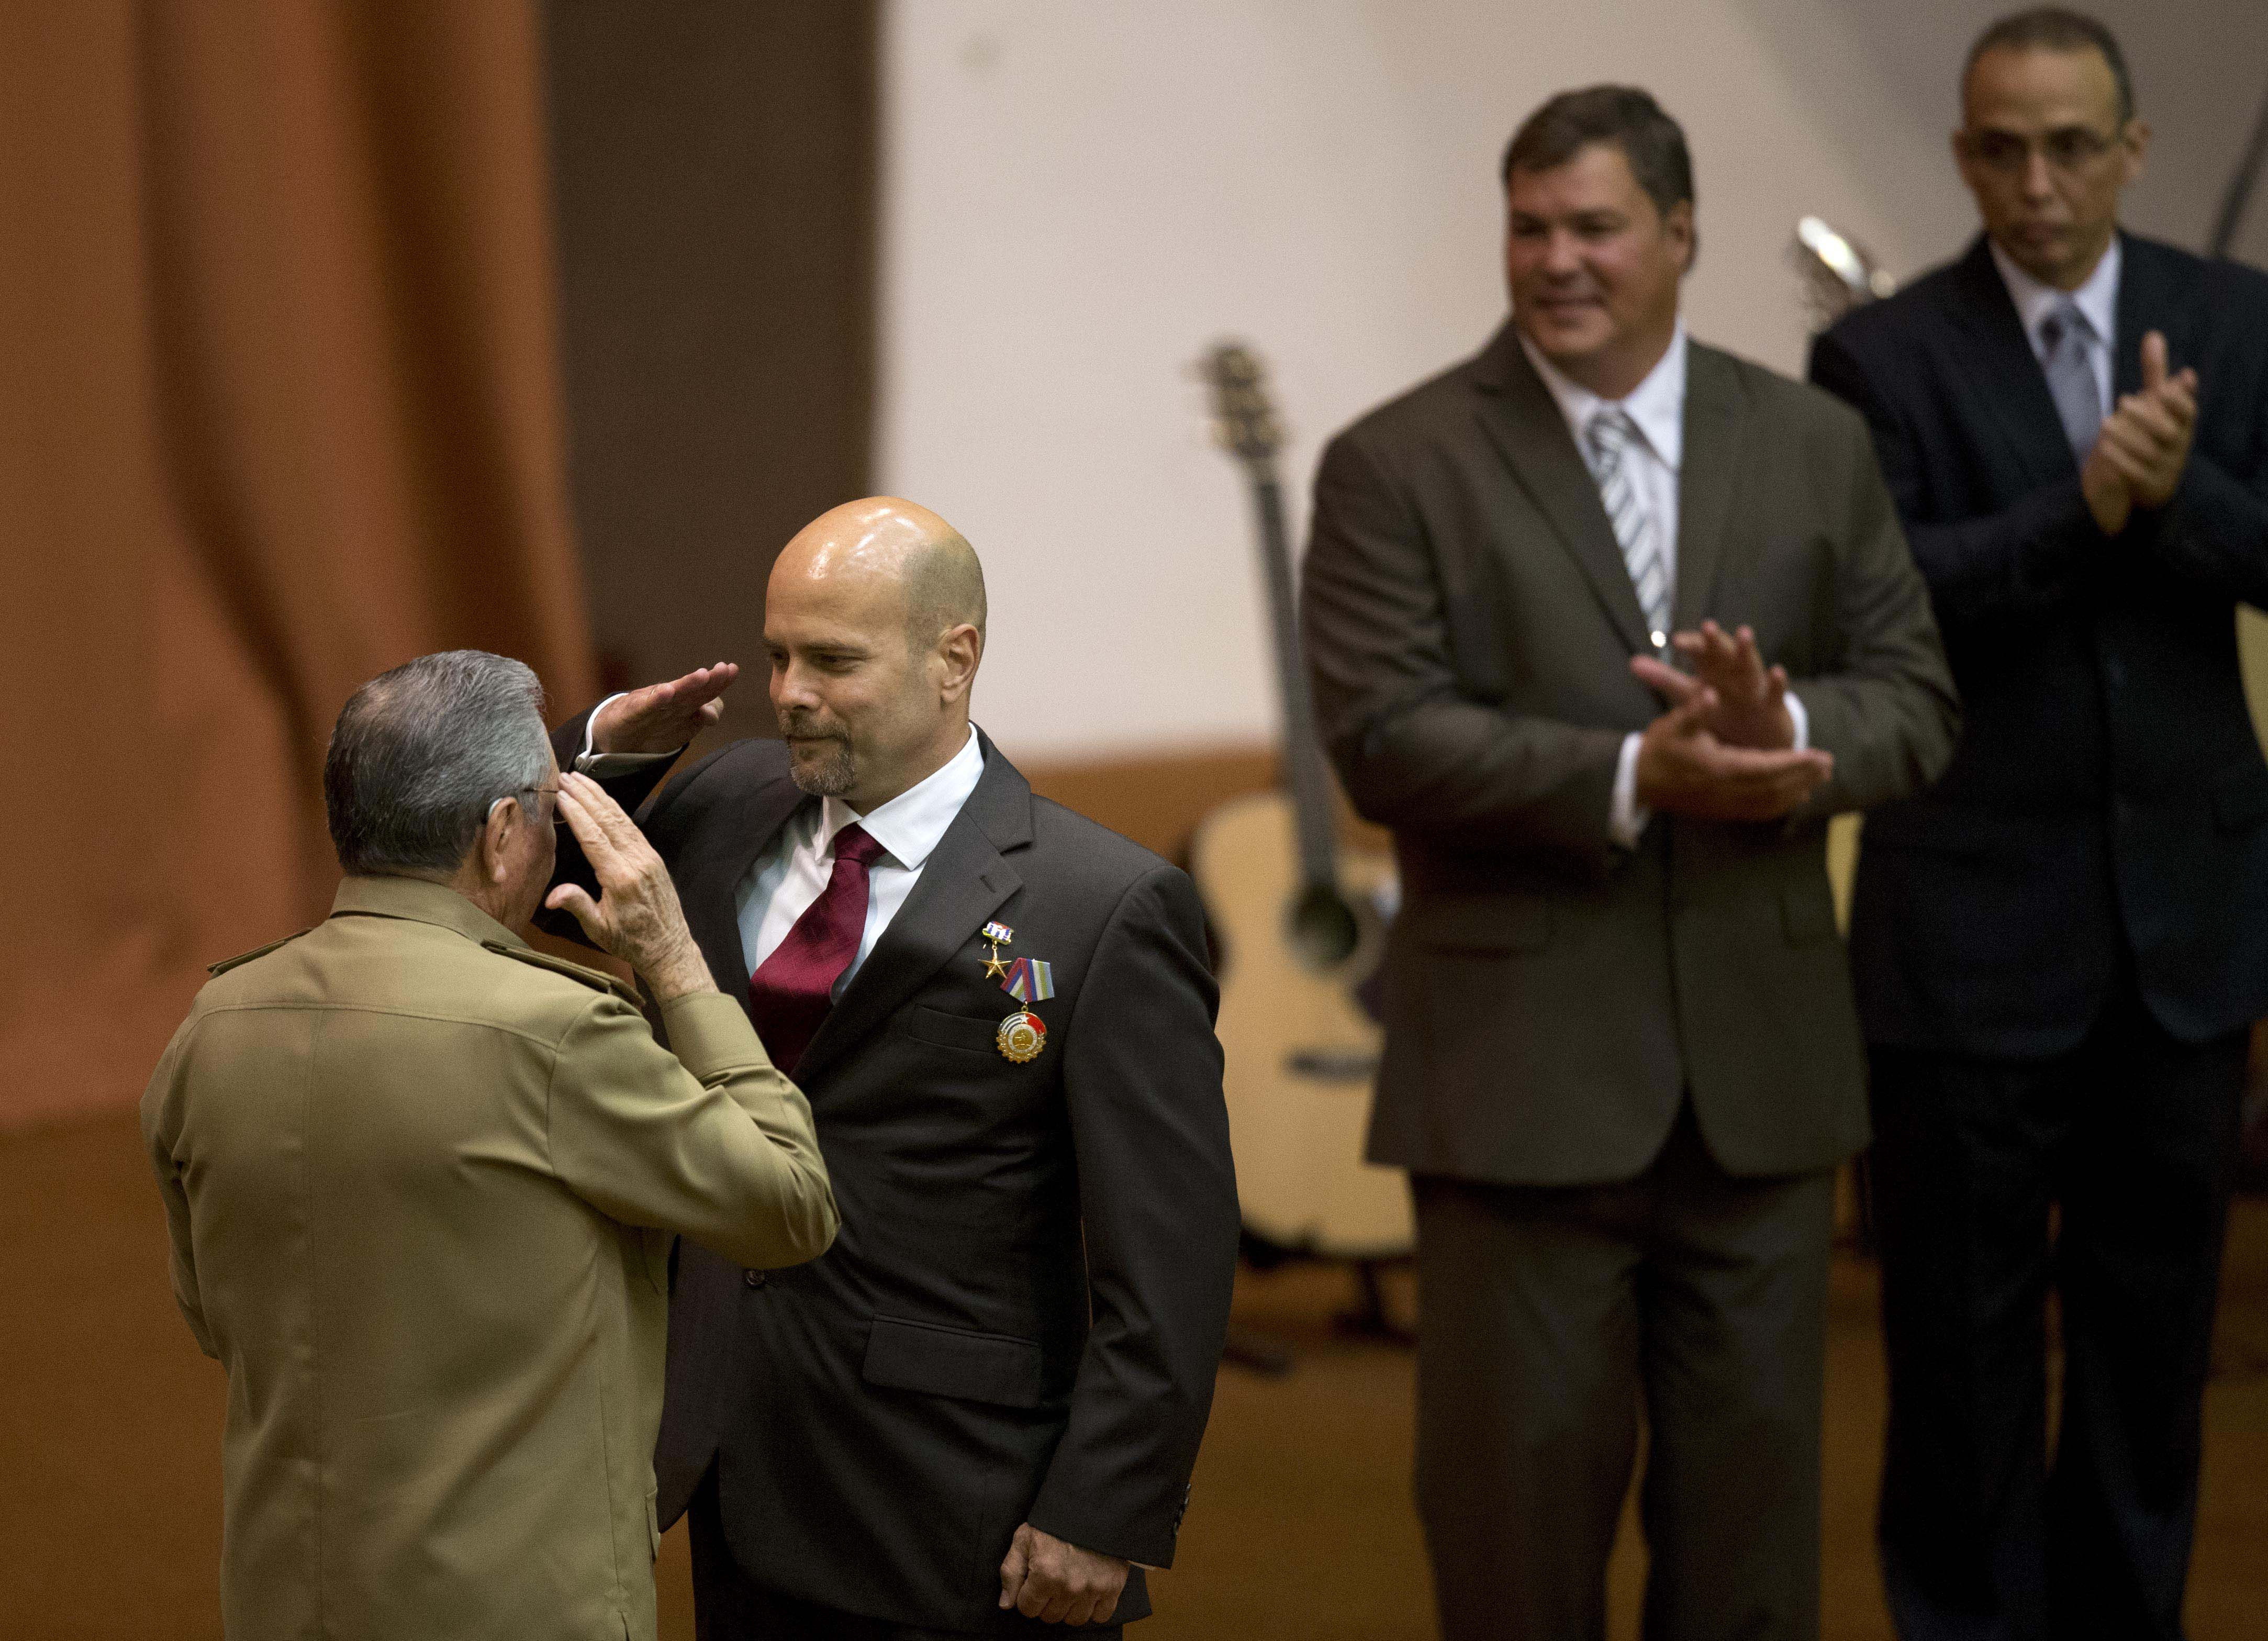 Cuba's President Raul Castro and Gerardo Hernandez salute, as fellow agents Ramon Labanino, background, second from right, and Antonio Guerrero applaud during a medal ceremony, in Havana, Cuba, Tuesday, Feb. 24, 2015